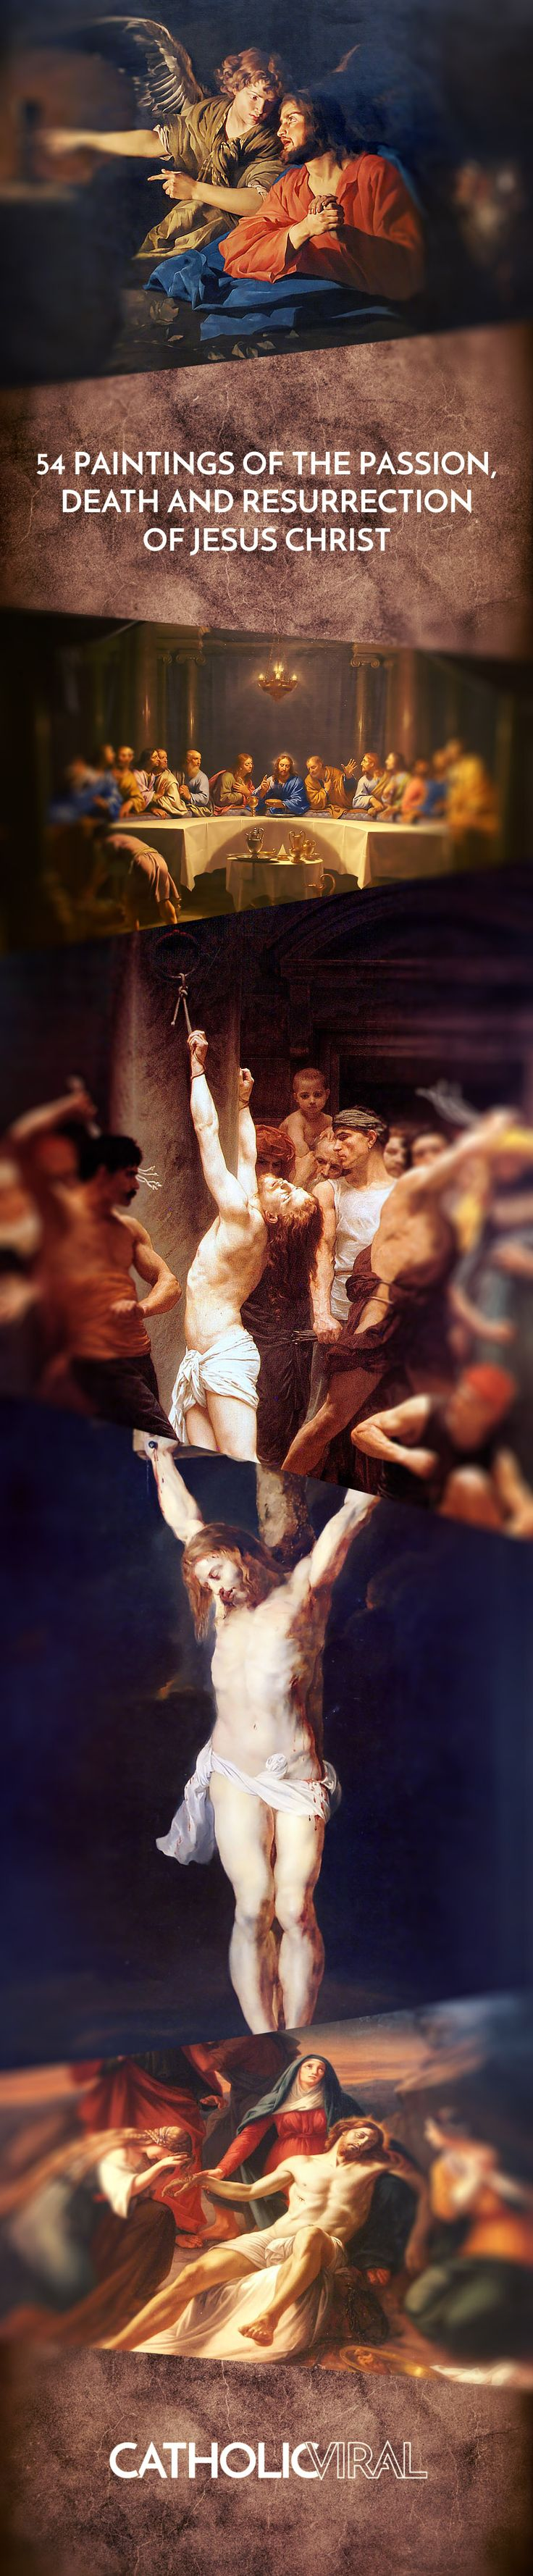 Get these 54 Paintings of the Passion, Death and Resurrection of Jesus Christ | The portrayal of the Passion, death and Resurrection of Christ in art has gripped the creative brushes of millions of painters throughout the ages. So when it comes to rounding up a selection of art for your enjoyment and meditation, the problem is where to stop!